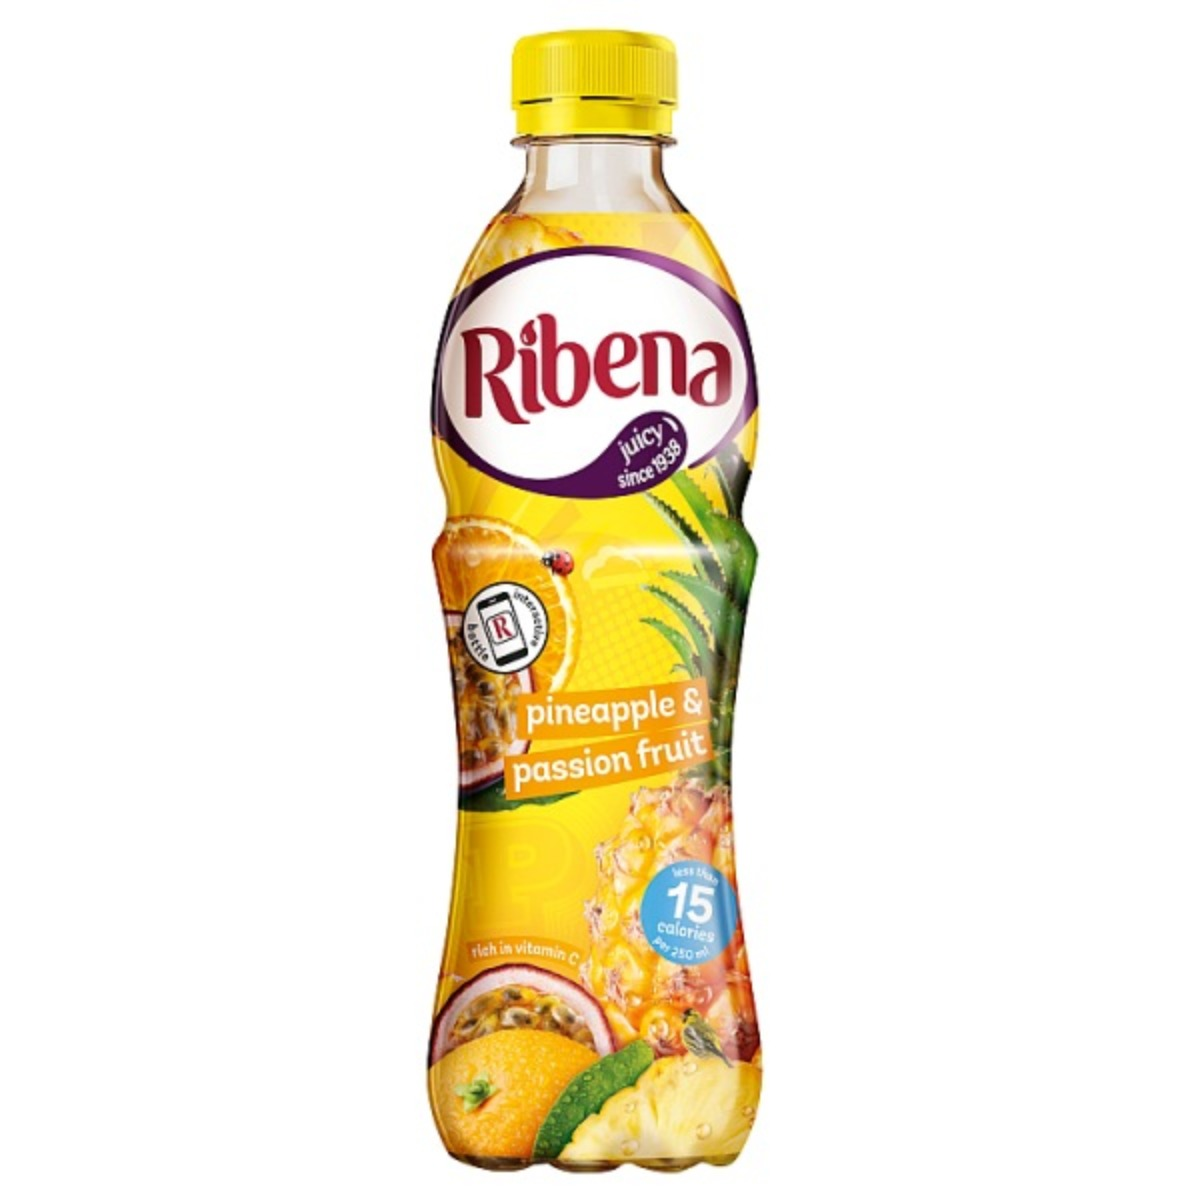 Ribena Pineapple & Passion Fruit Bottle 12x500ml